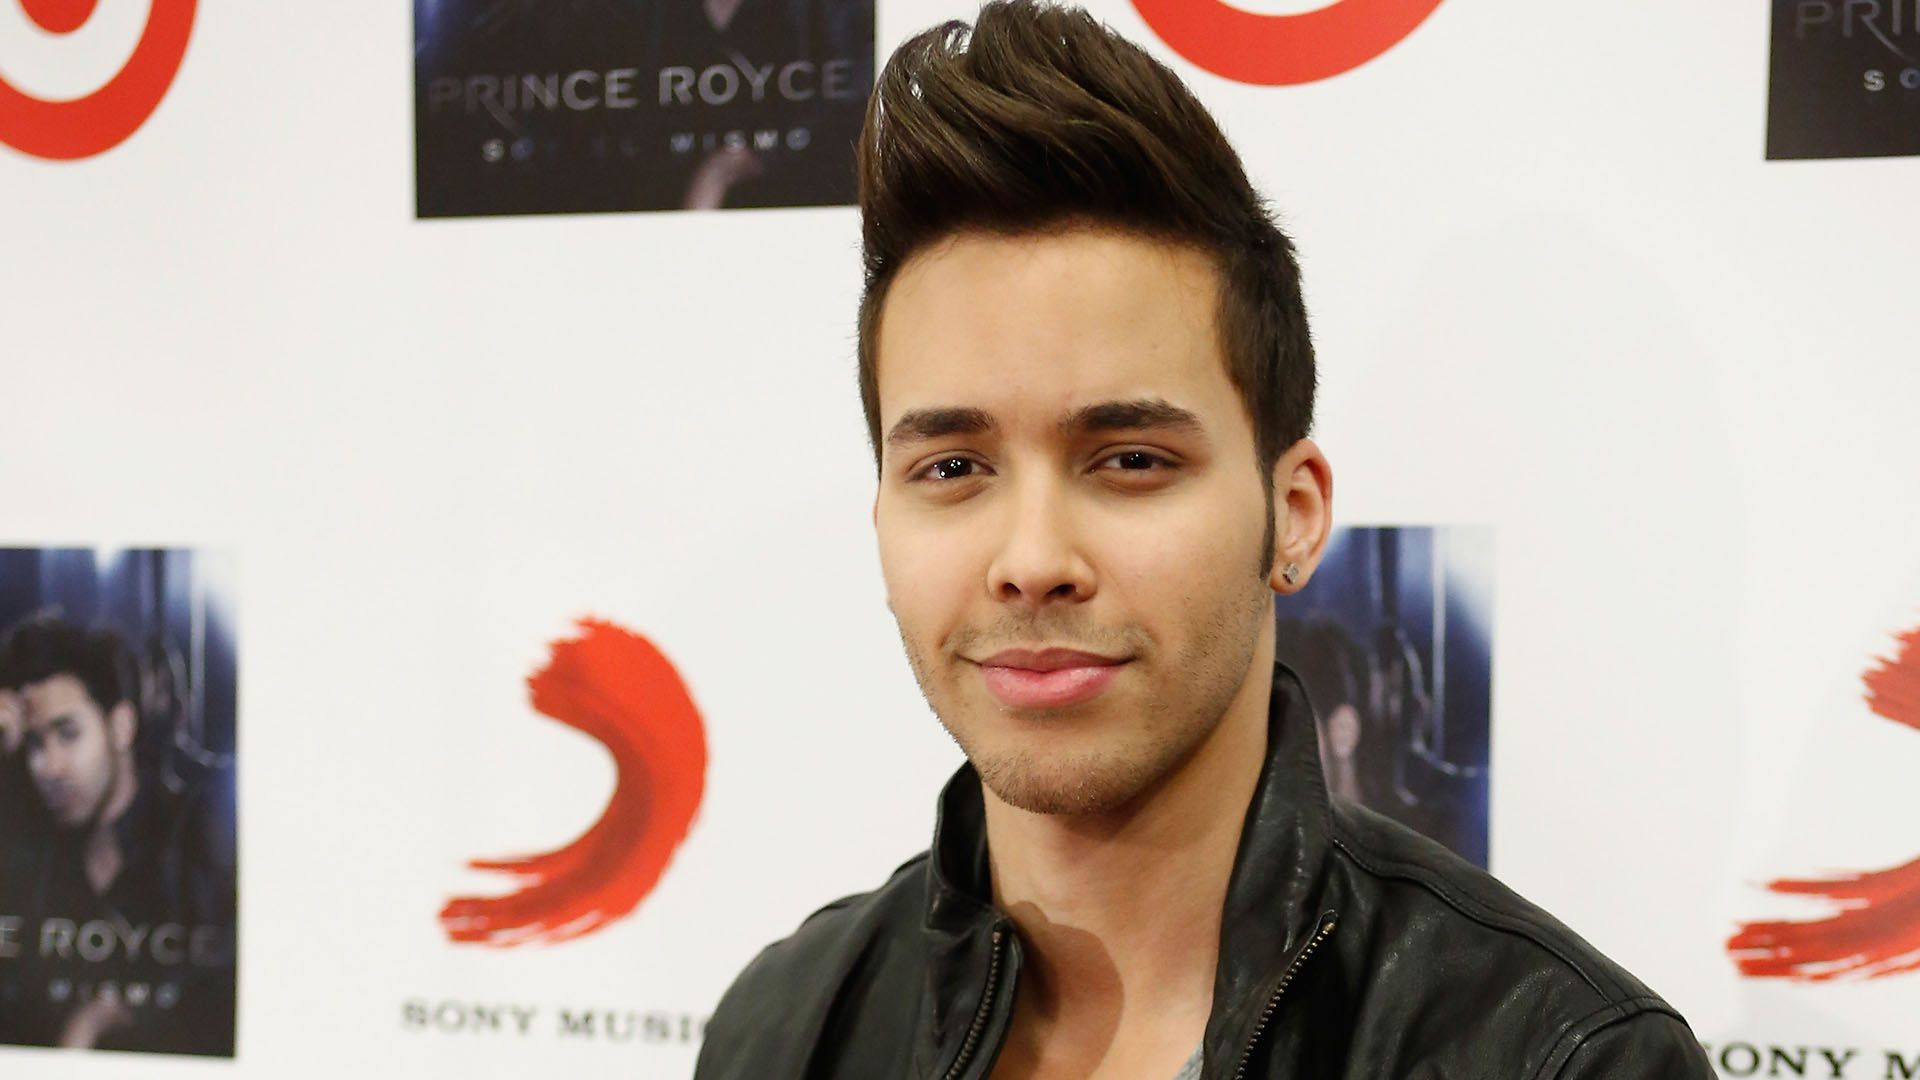 prince royce hd images 2 | prince royce hd images | pinterest